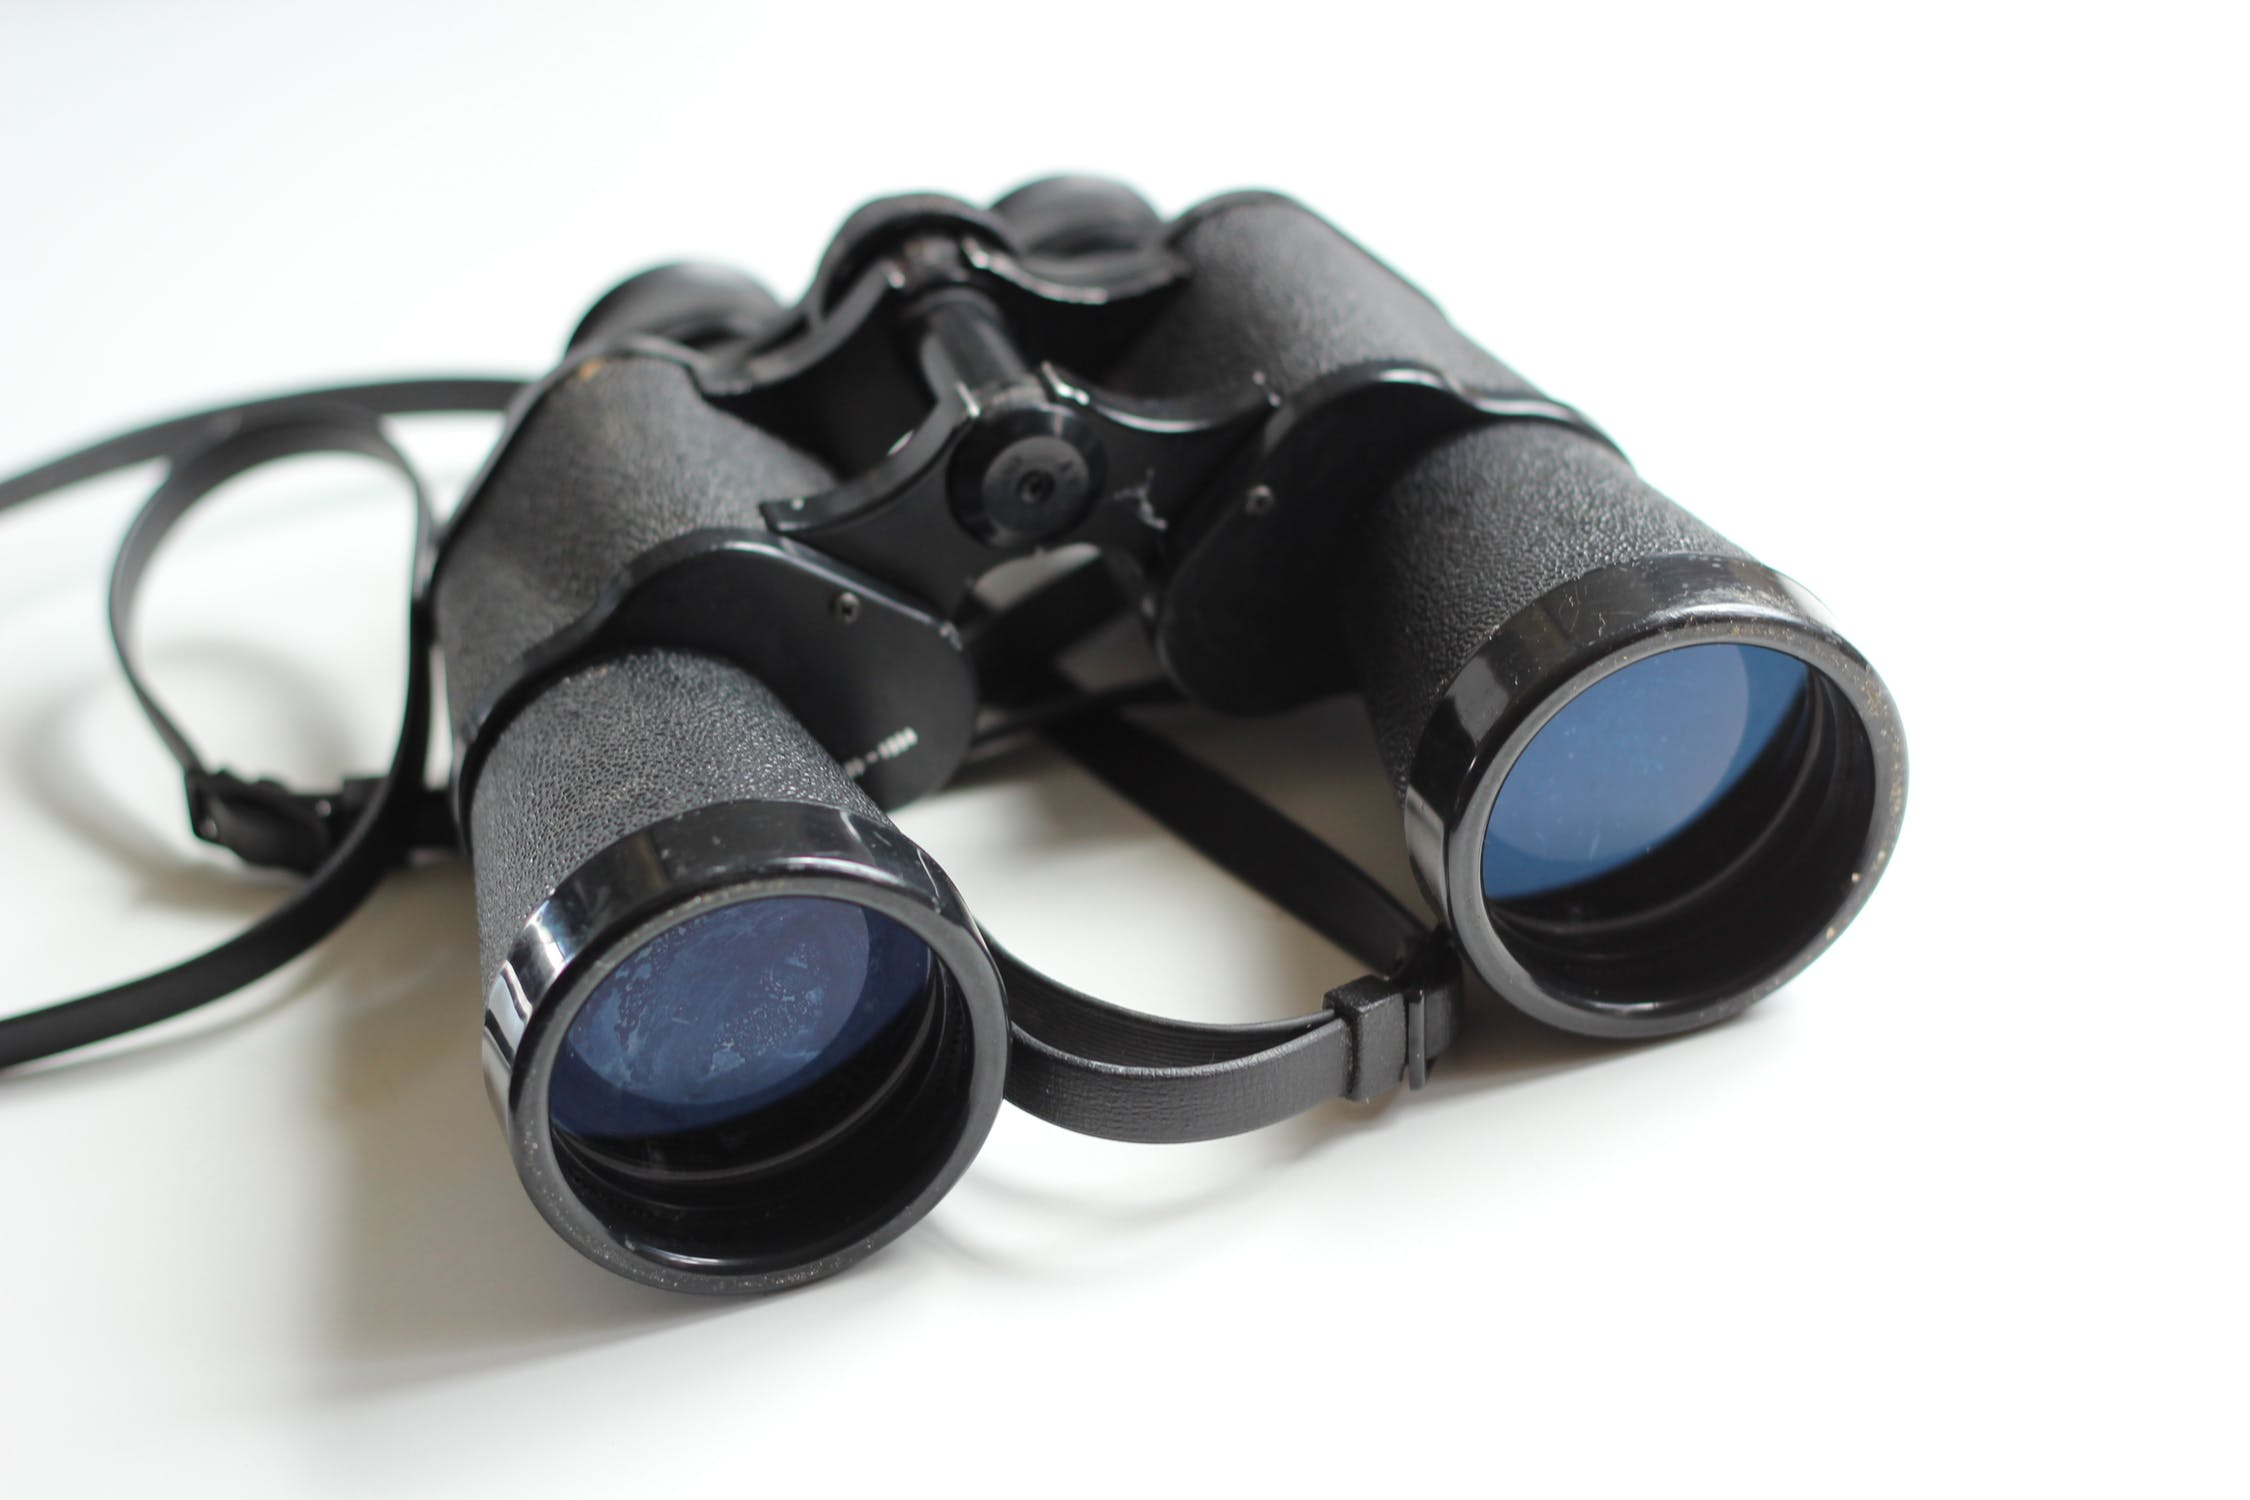 45 best legal spying tools on the internet